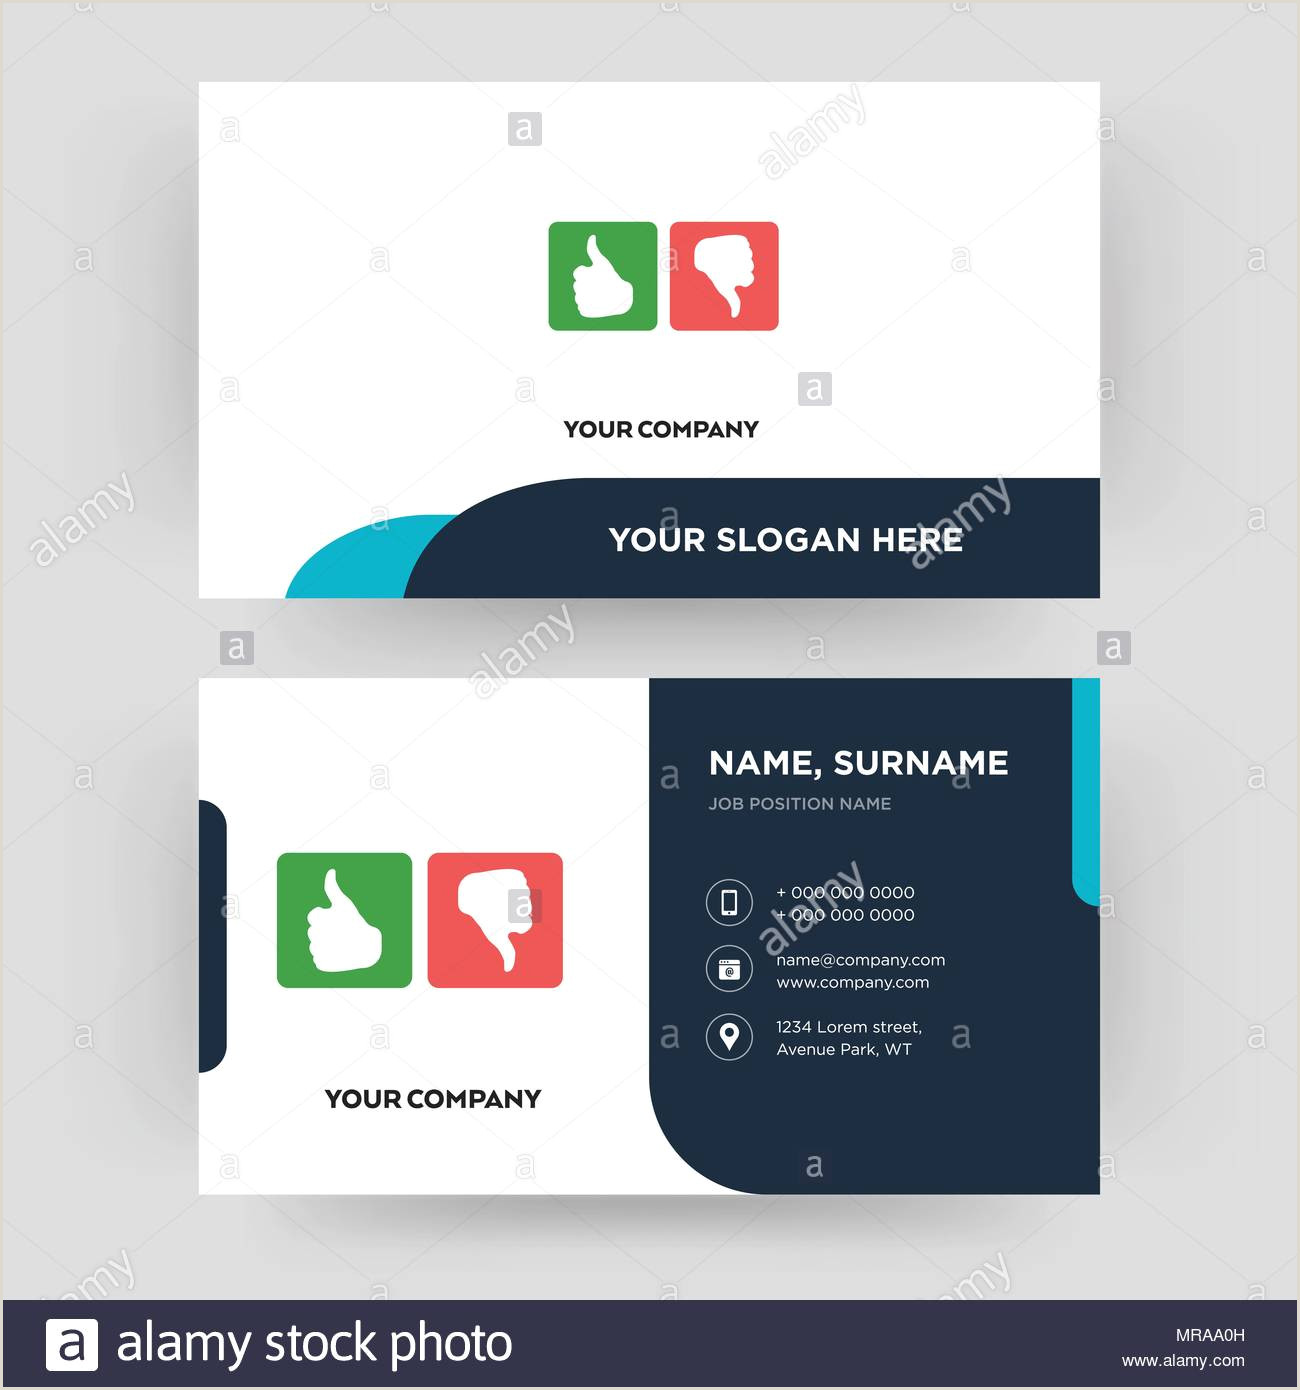 Bad Business Cards Good Bad Business Card Design Template Visiting For Your